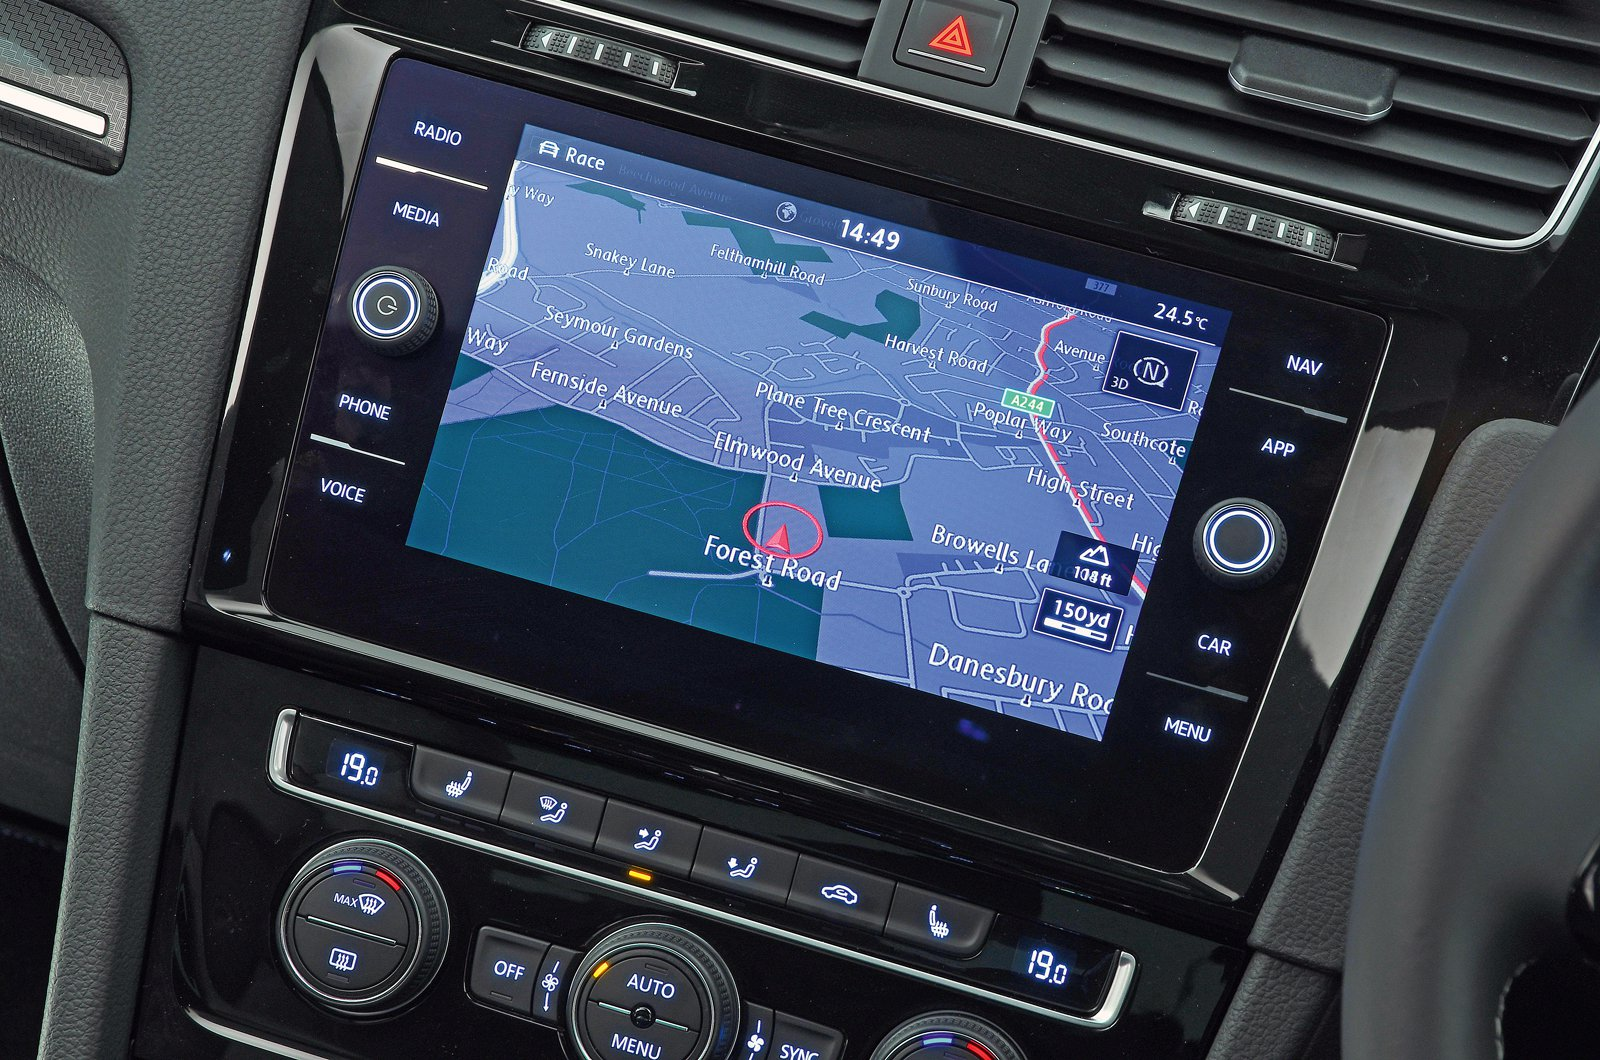 Volkswagen Golf R touchscreen